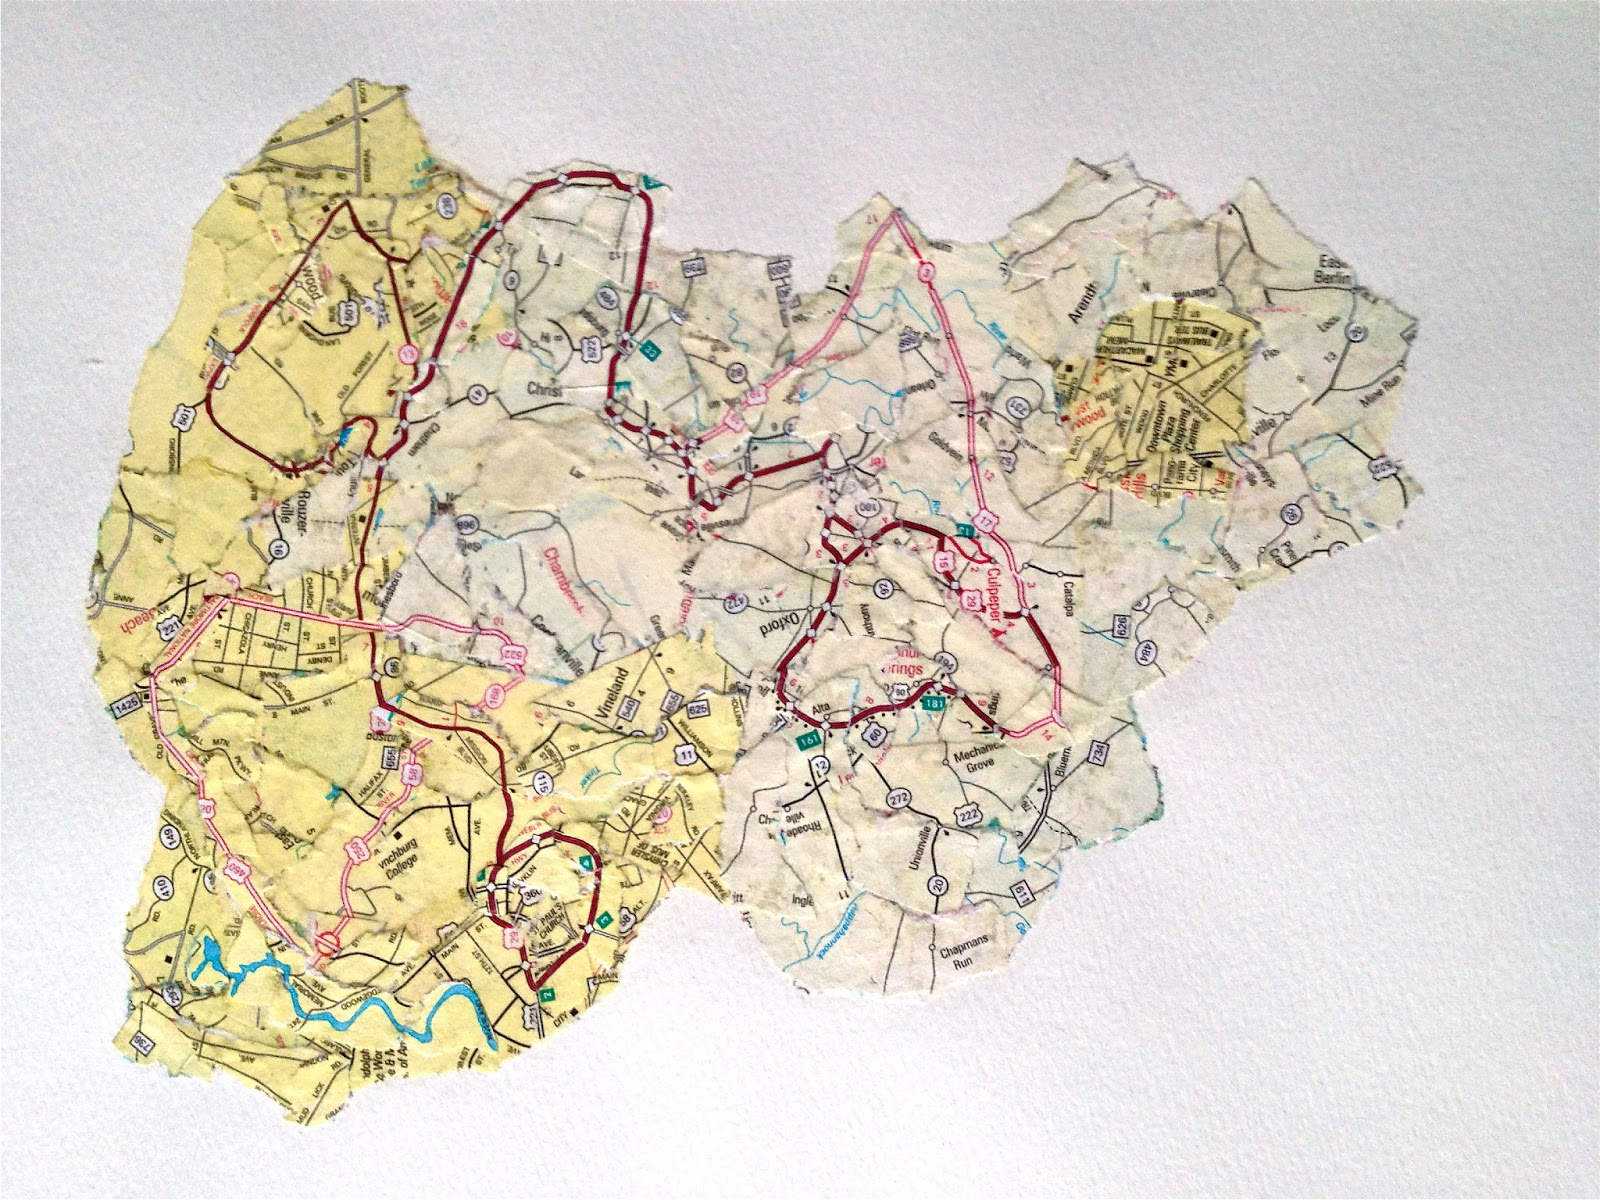 Jennifer Elling: Map Collage on map slide show, map travel, map facebook covers, map creator, map pencil, map in india, map gift tags, map in europe, map still life, map de france, map making, map of college football teams, map major rivers in australia, map with mountains, map with states, map distance between cities, map of dallas texas and surrounding areas, map vintage, map in spanish, map history,